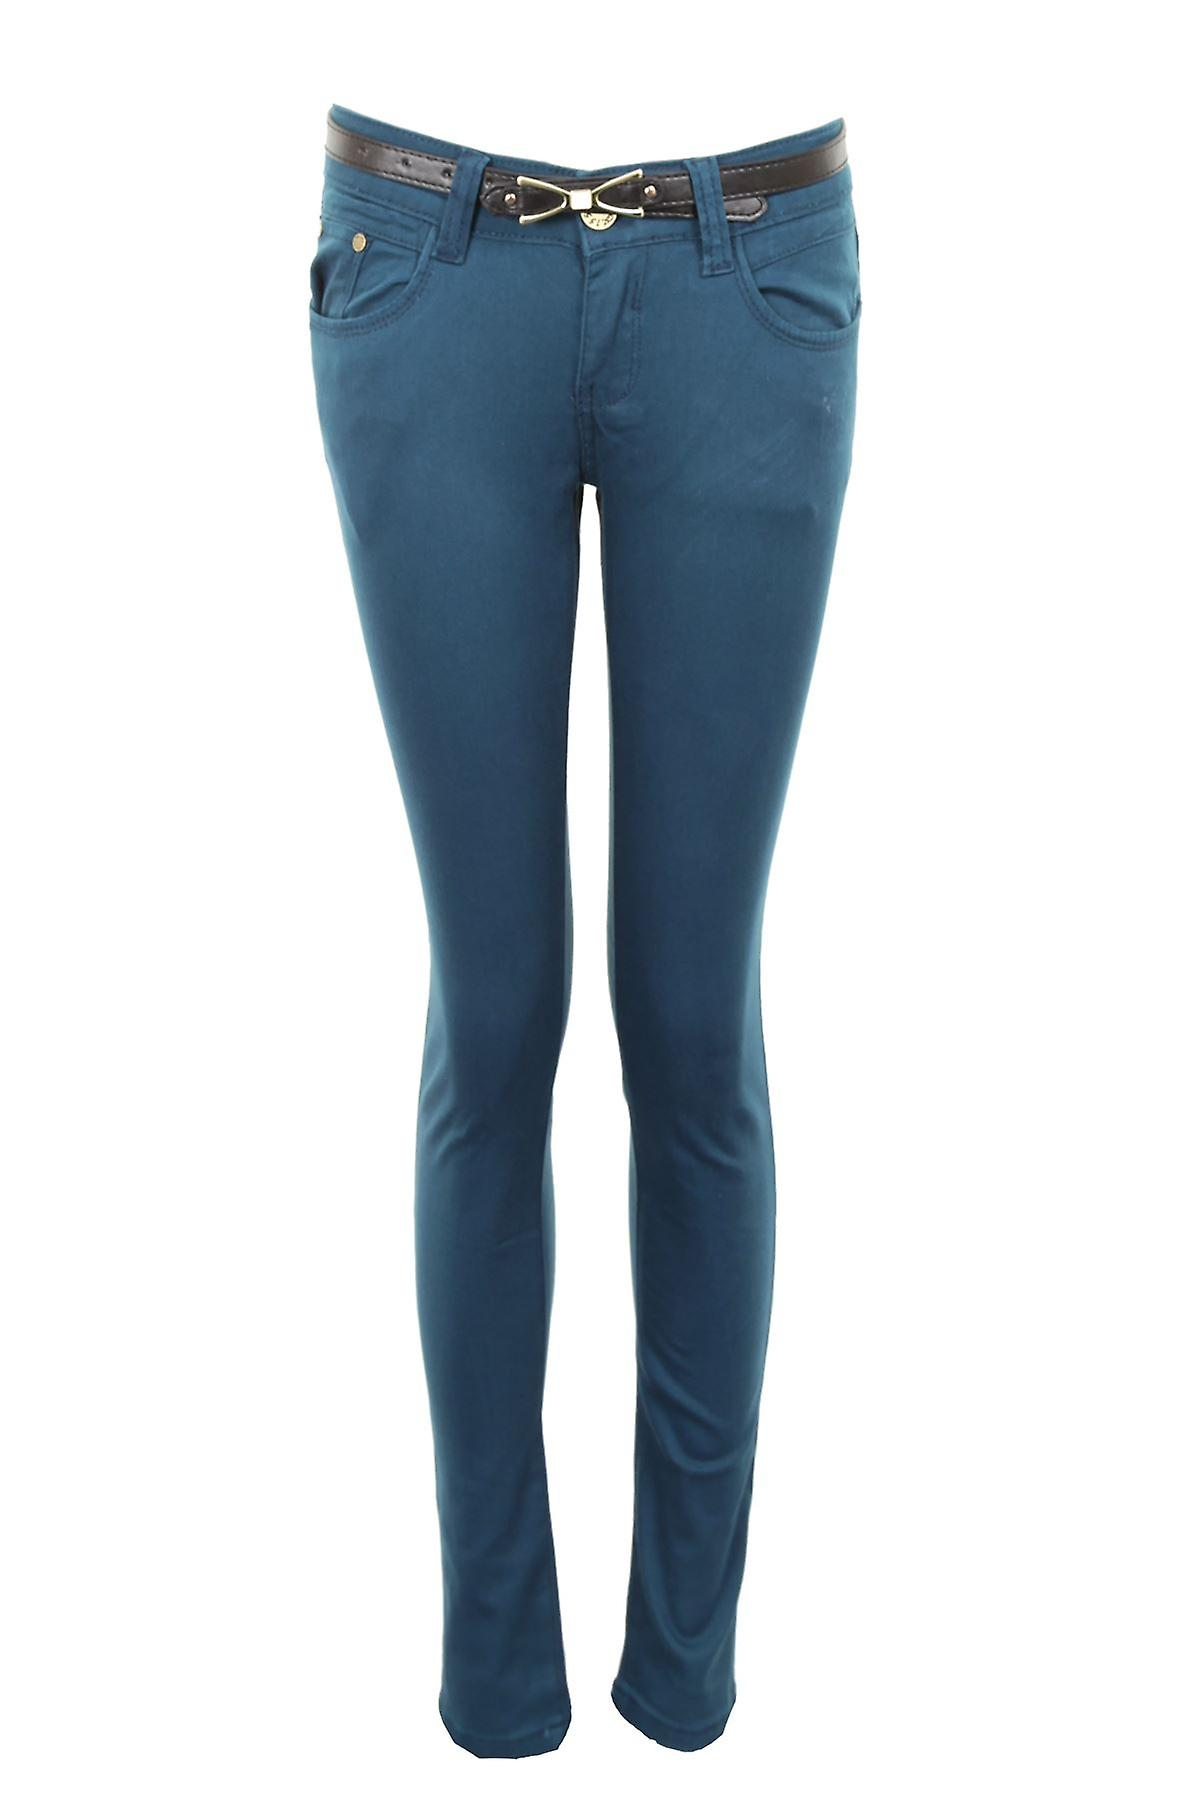 New Ladies Slim Fit Skinny Belted Coloured Denim Women's Jeans